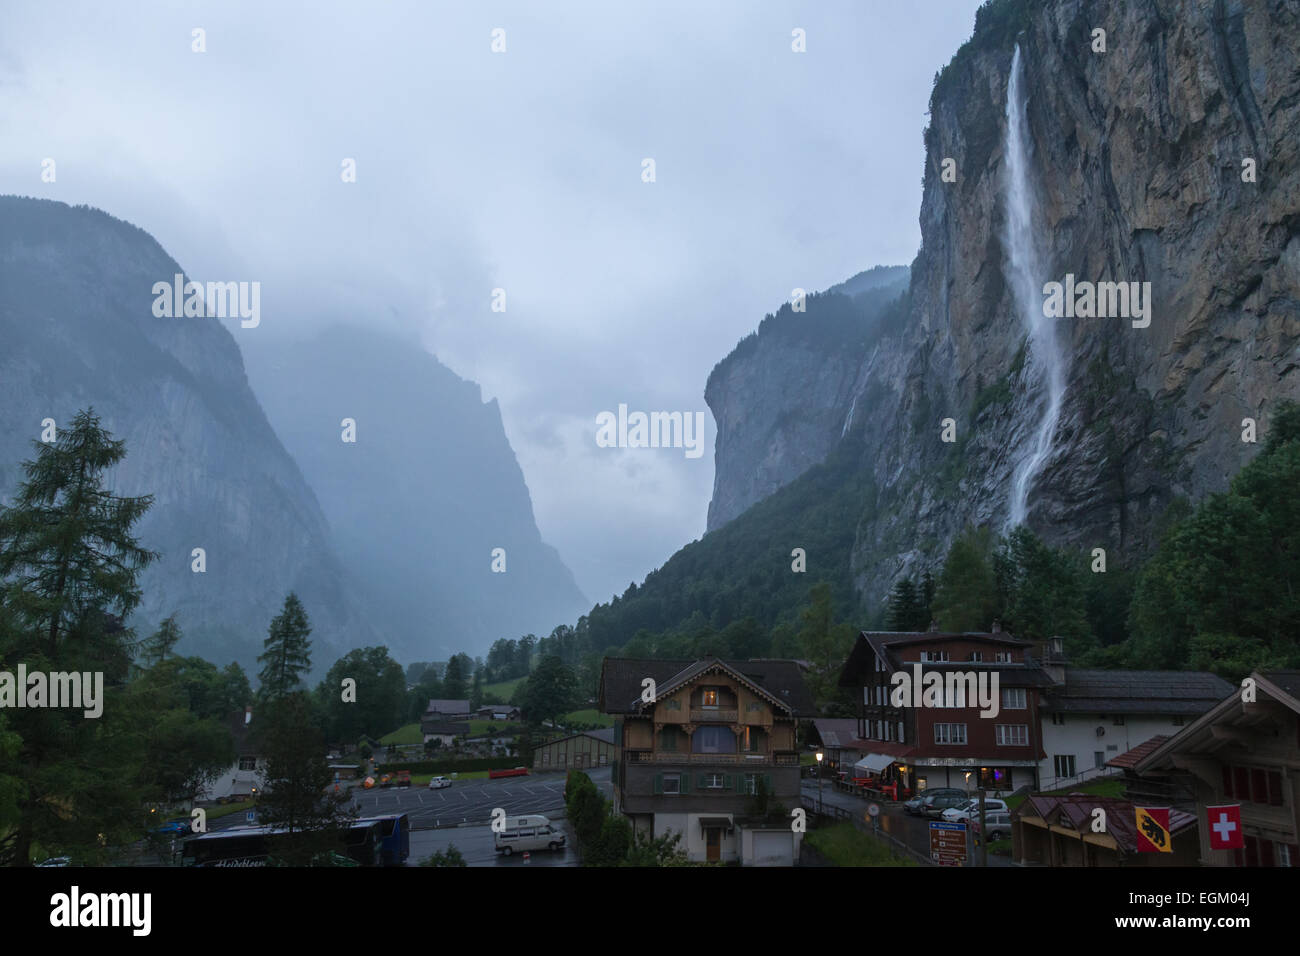 Stabbach Falls contrasts against the dark storm clouds  and rain moving through Lauterbrunnen Valley, Switzerland Stock Photo